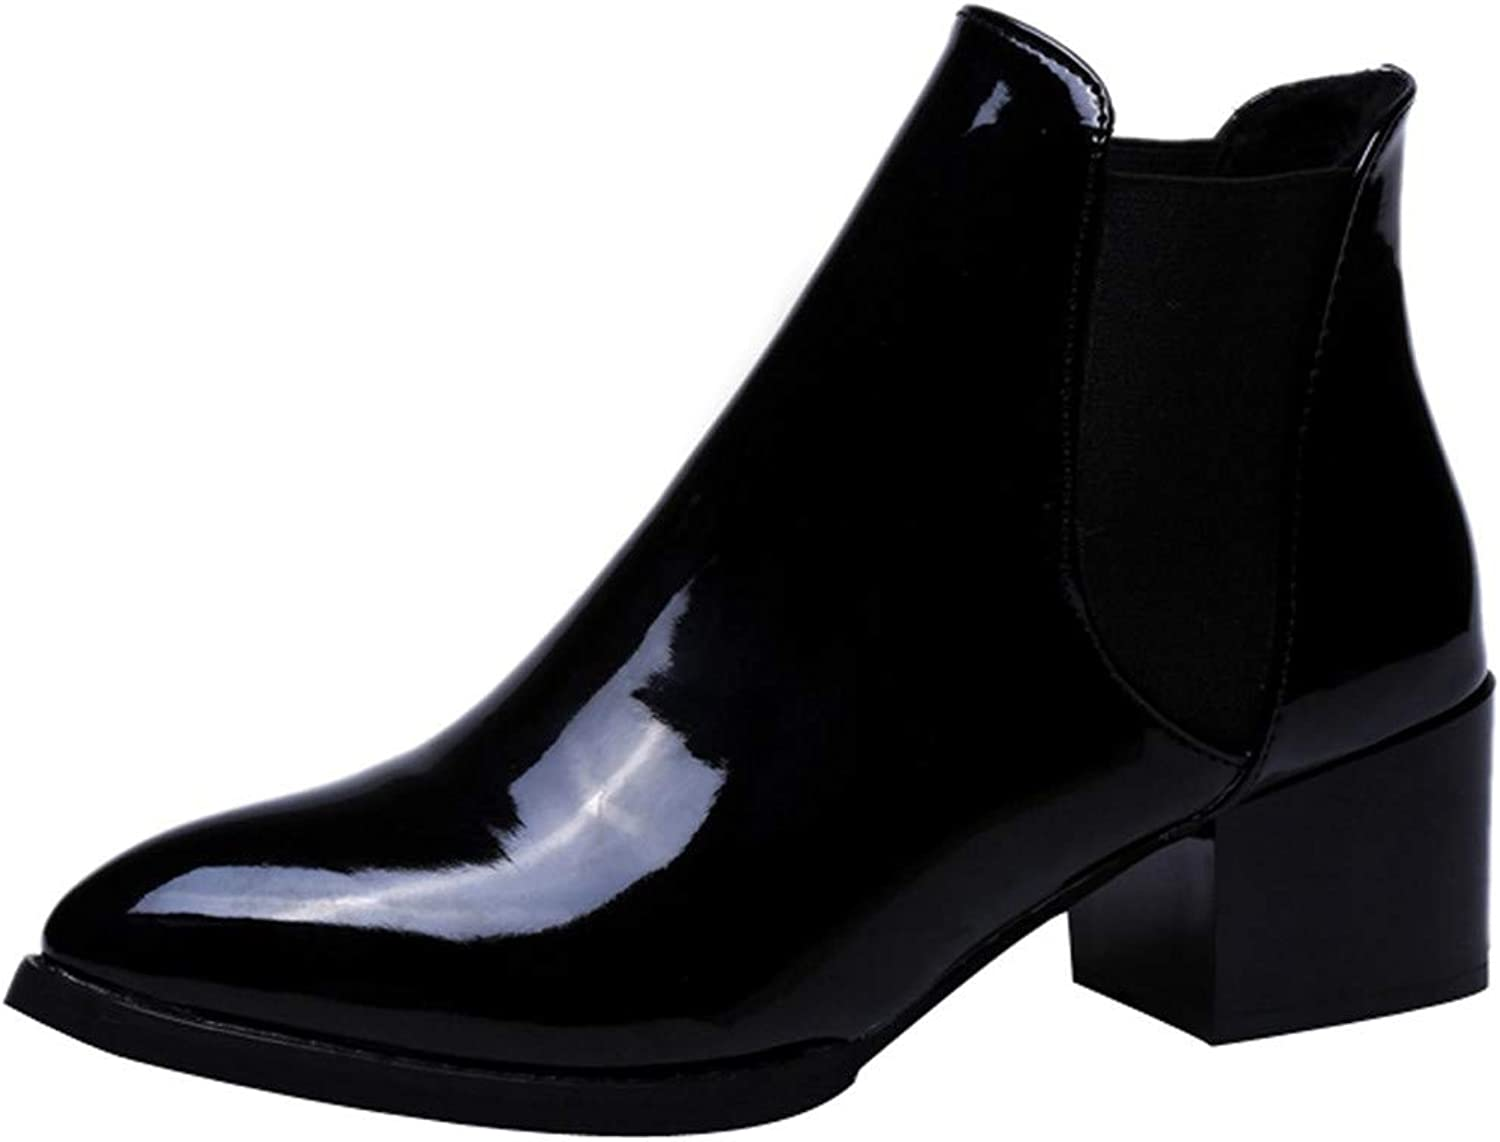 Niliyou Women Ankle Boots Leather Pointed Women Boots Sexy Boots Toe Low Heel Boots